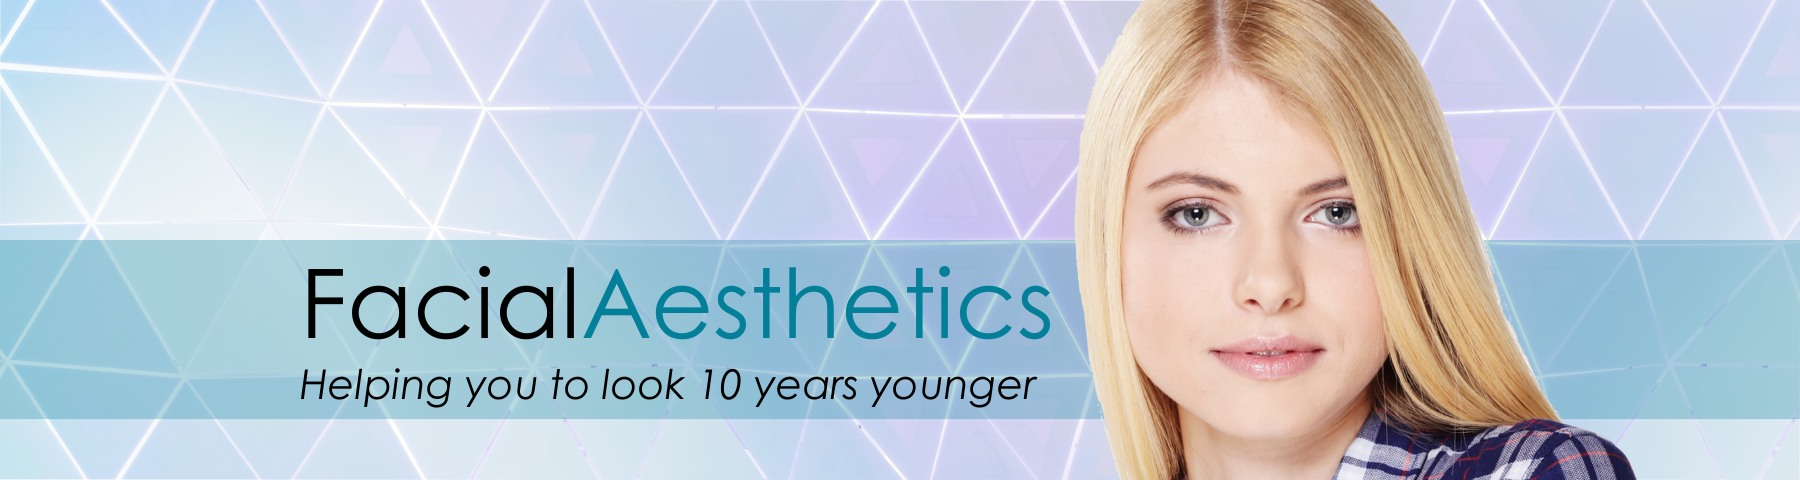 Ranelagh Dental Clinic - facial aesthetics - 10 years younger